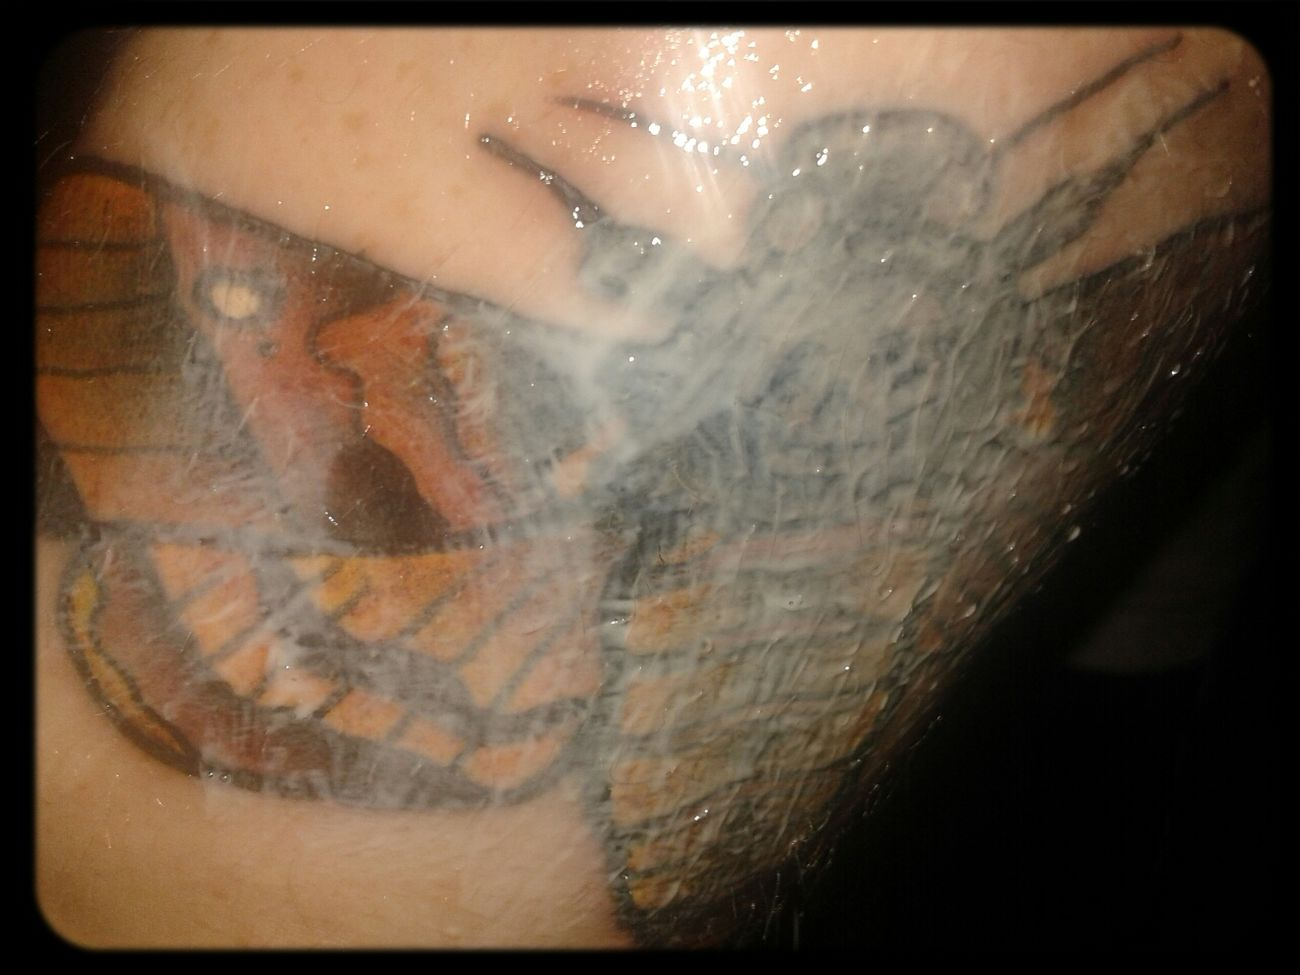 healing time Tattoo Tattooed Deathmoth Healing